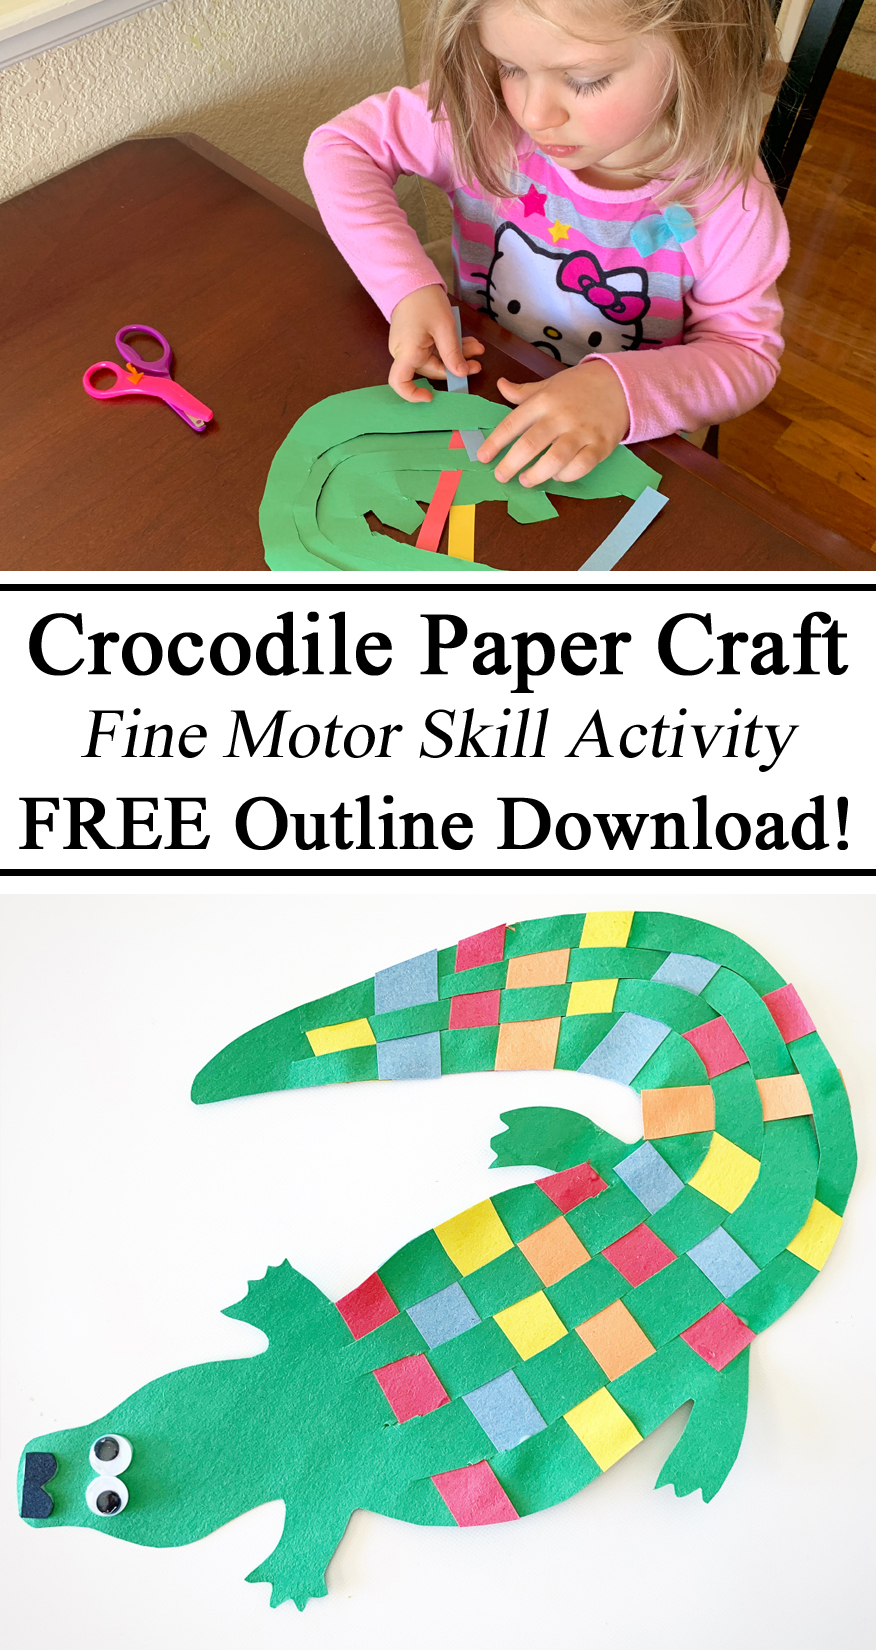 Crocodile, paper craft, free download, printables, printable, outline, paper craft, construction, fine motor skills, hand strengthening, outback, Australia unit, geography, weaving, googly eyes, homeschool, homeschooling, diy, arts and crafts, preschool, kindergarten, inspiration, ideas